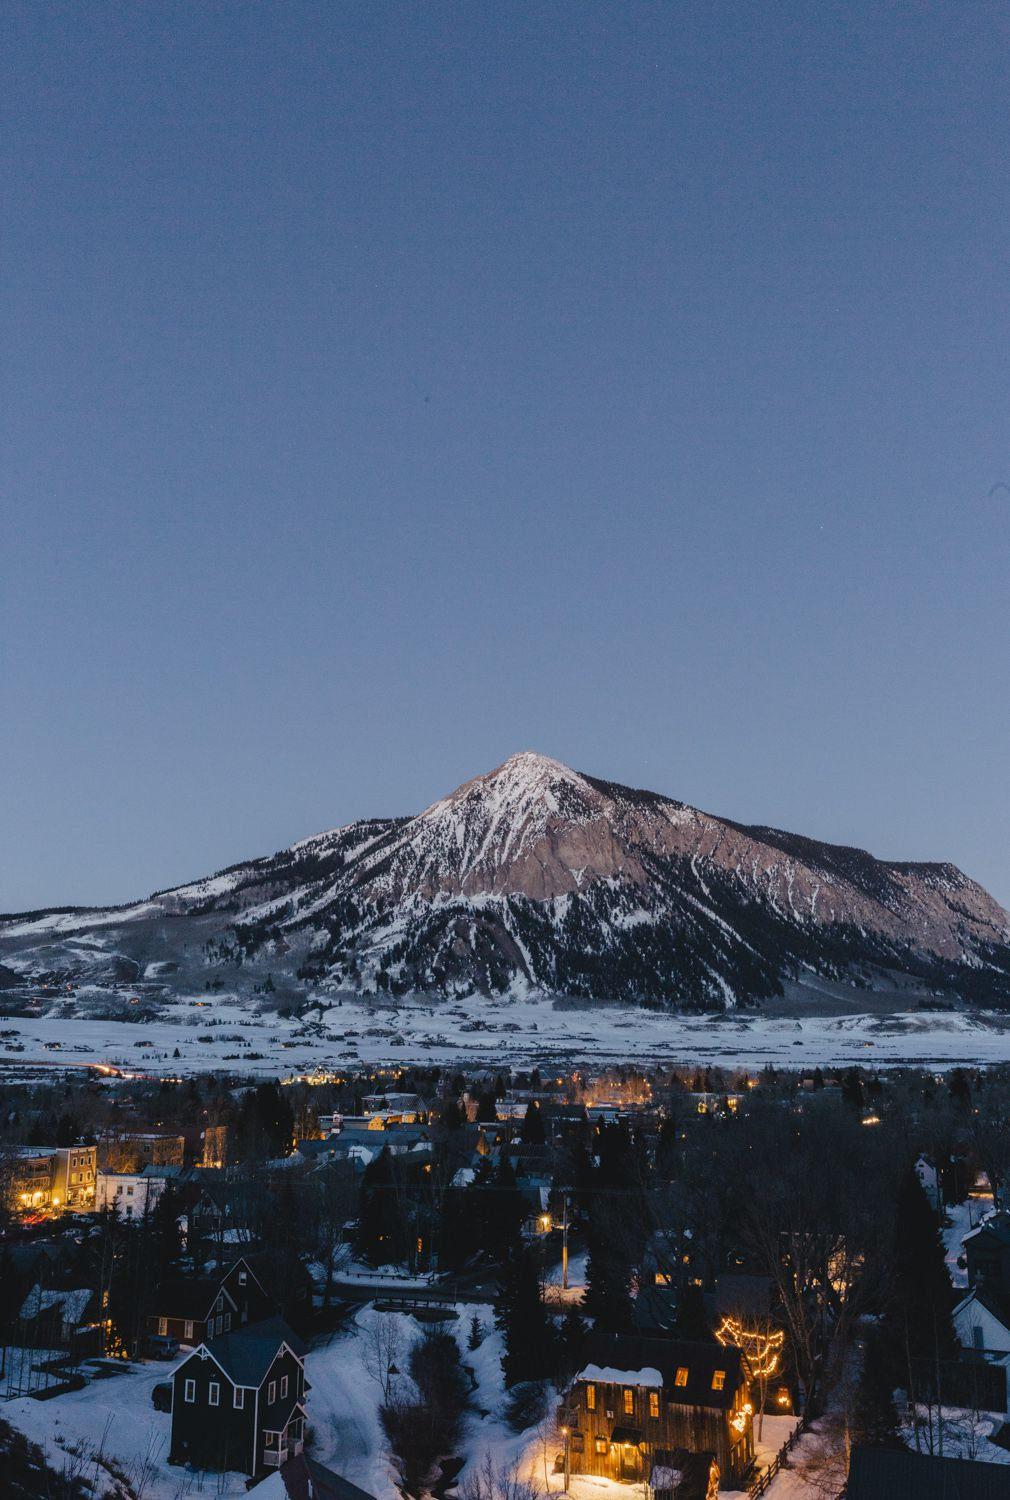 A nighttime view of the town of Crested Butte with lights on in many houses, and a mountain in the background.